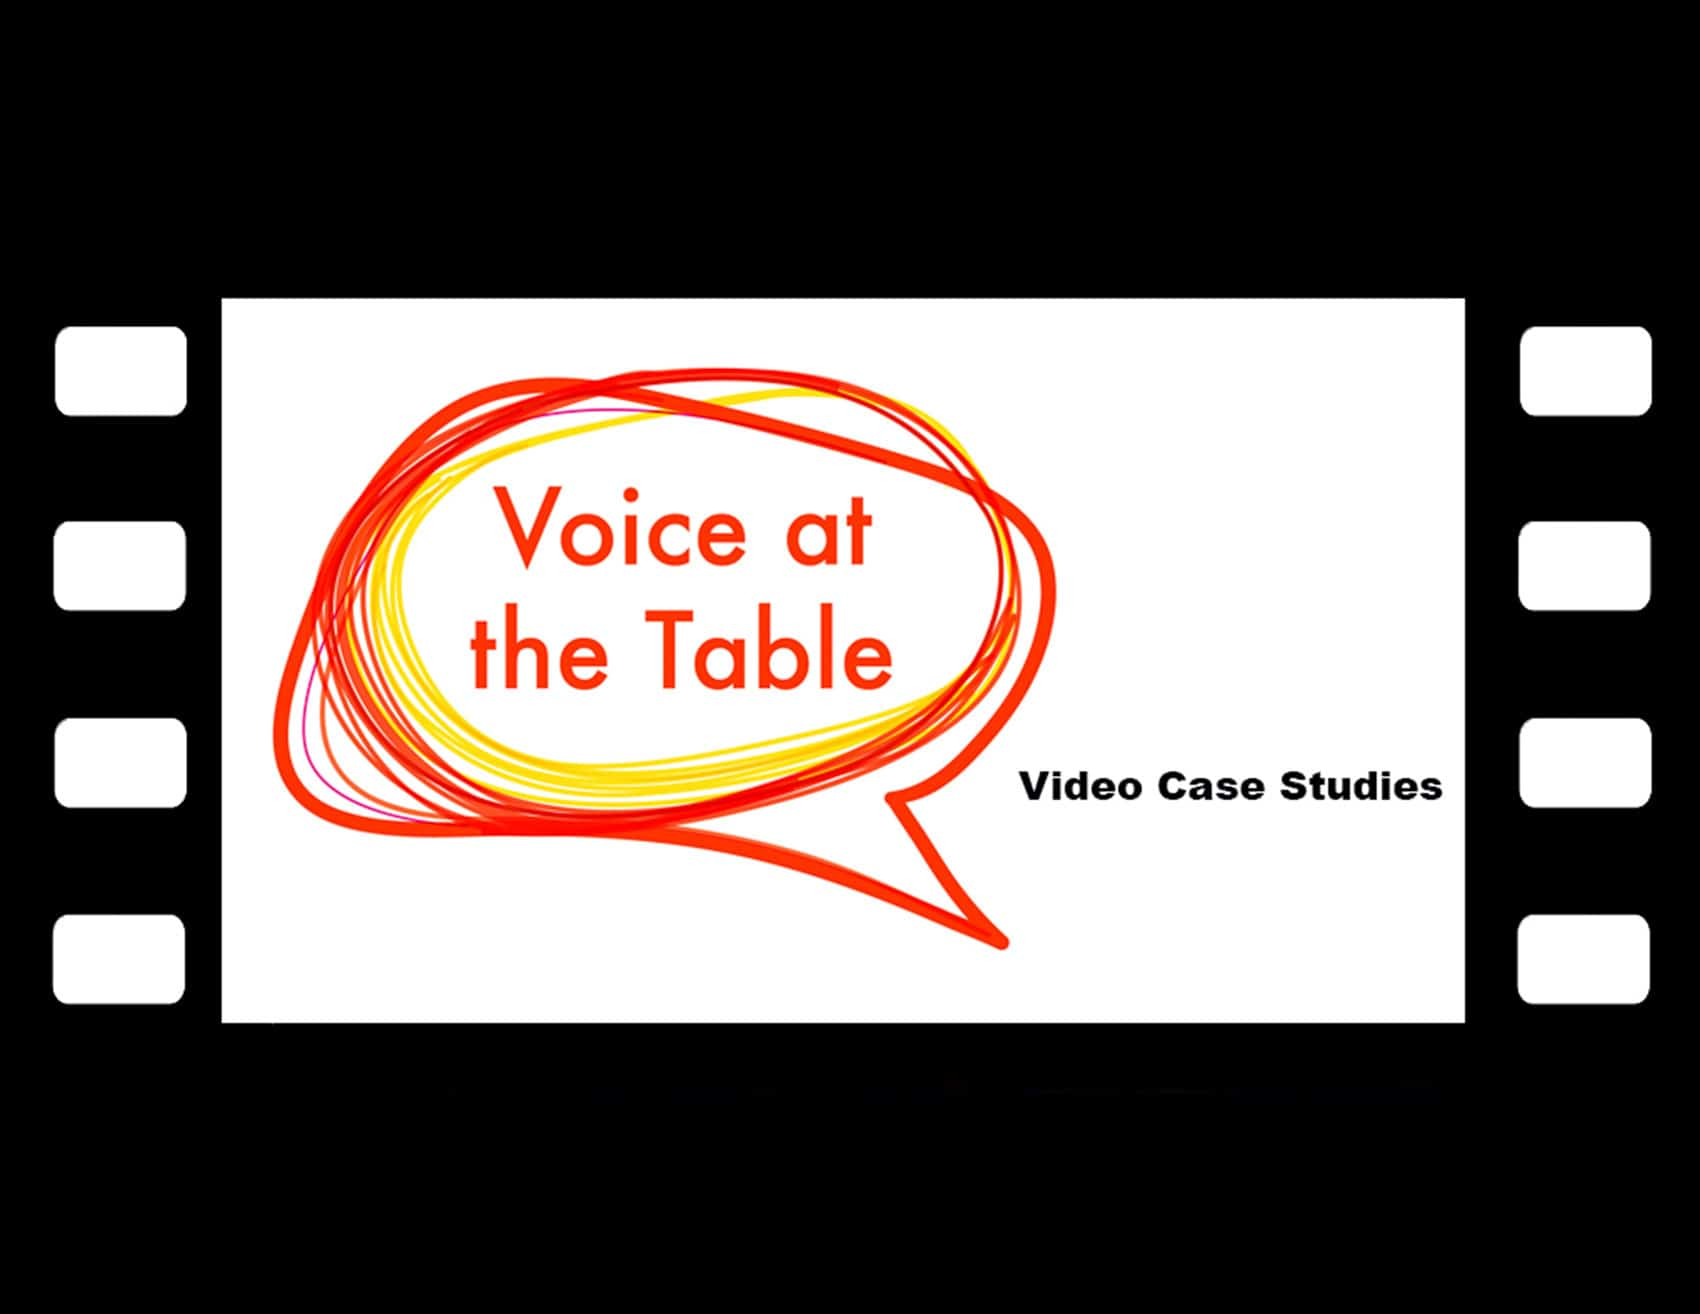 Voice At The Table Video Case Studies